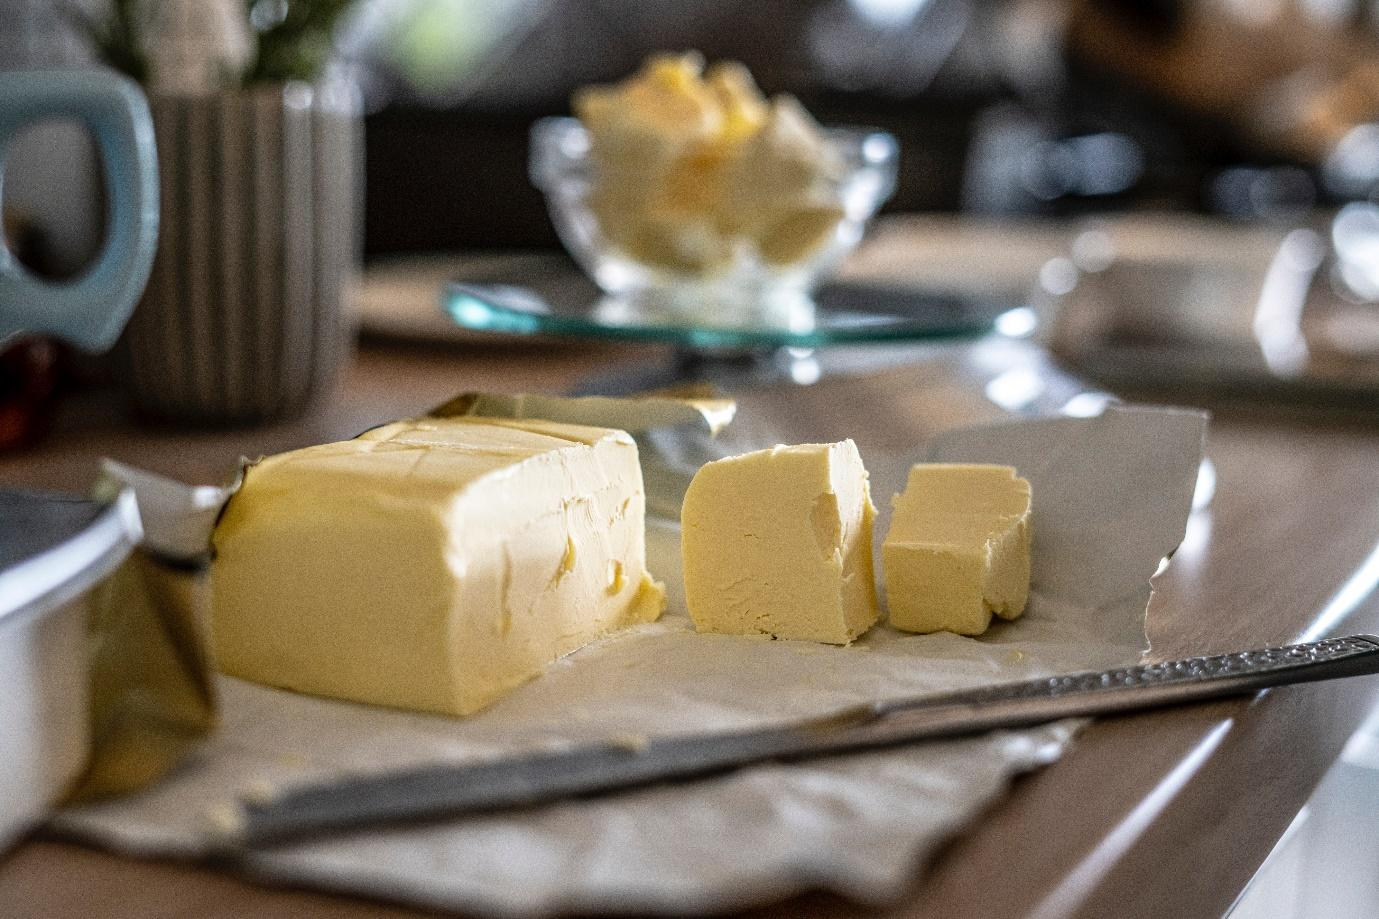 A group of cheeses on a cutting board  Description automatically generated with low confidence